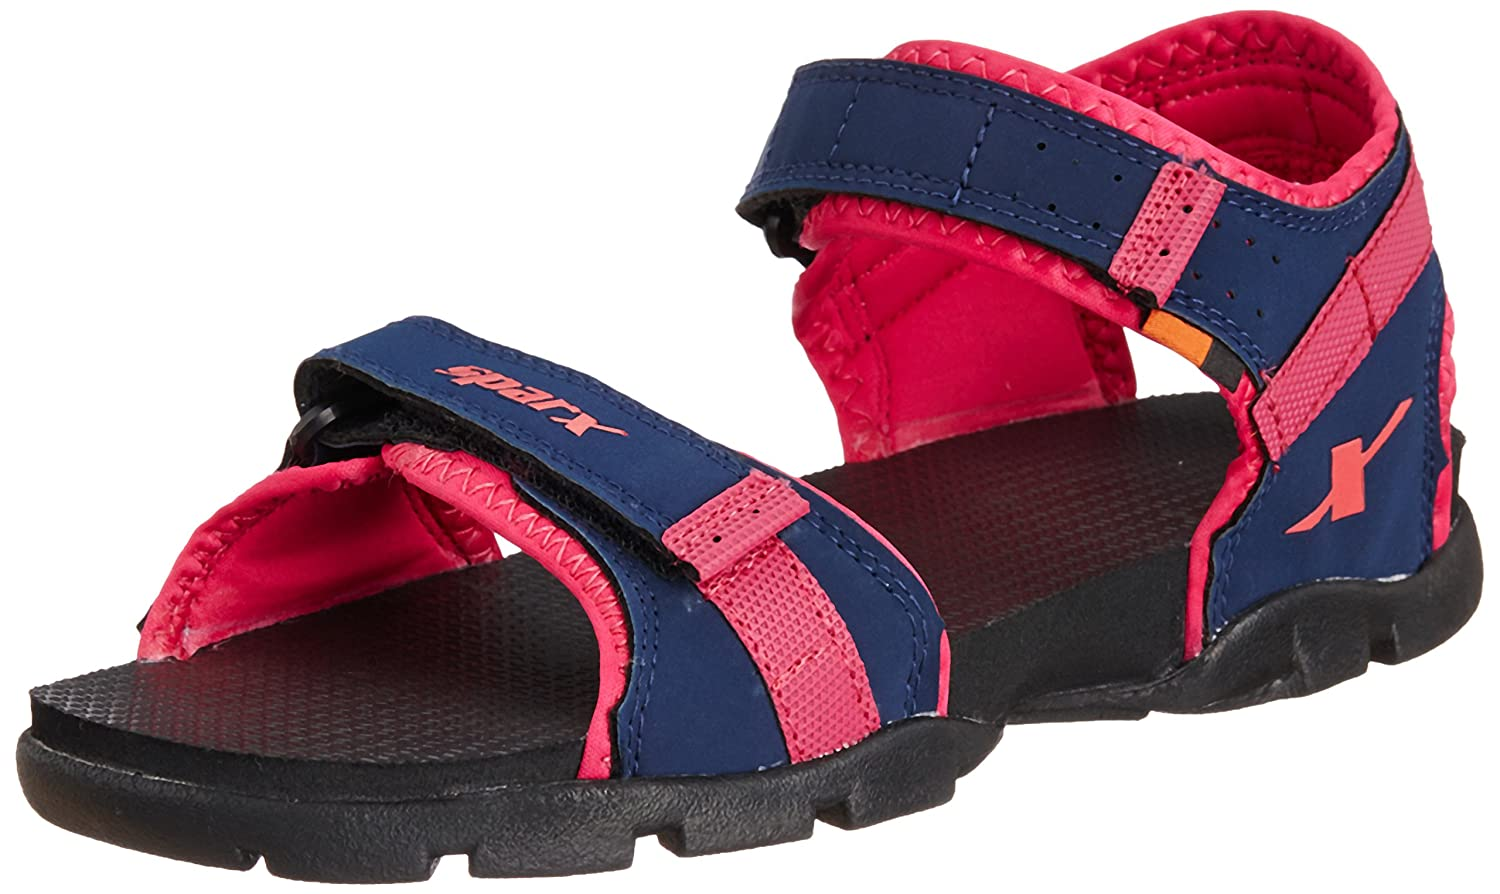 Buy Sparx Women's Fashion Sandals at